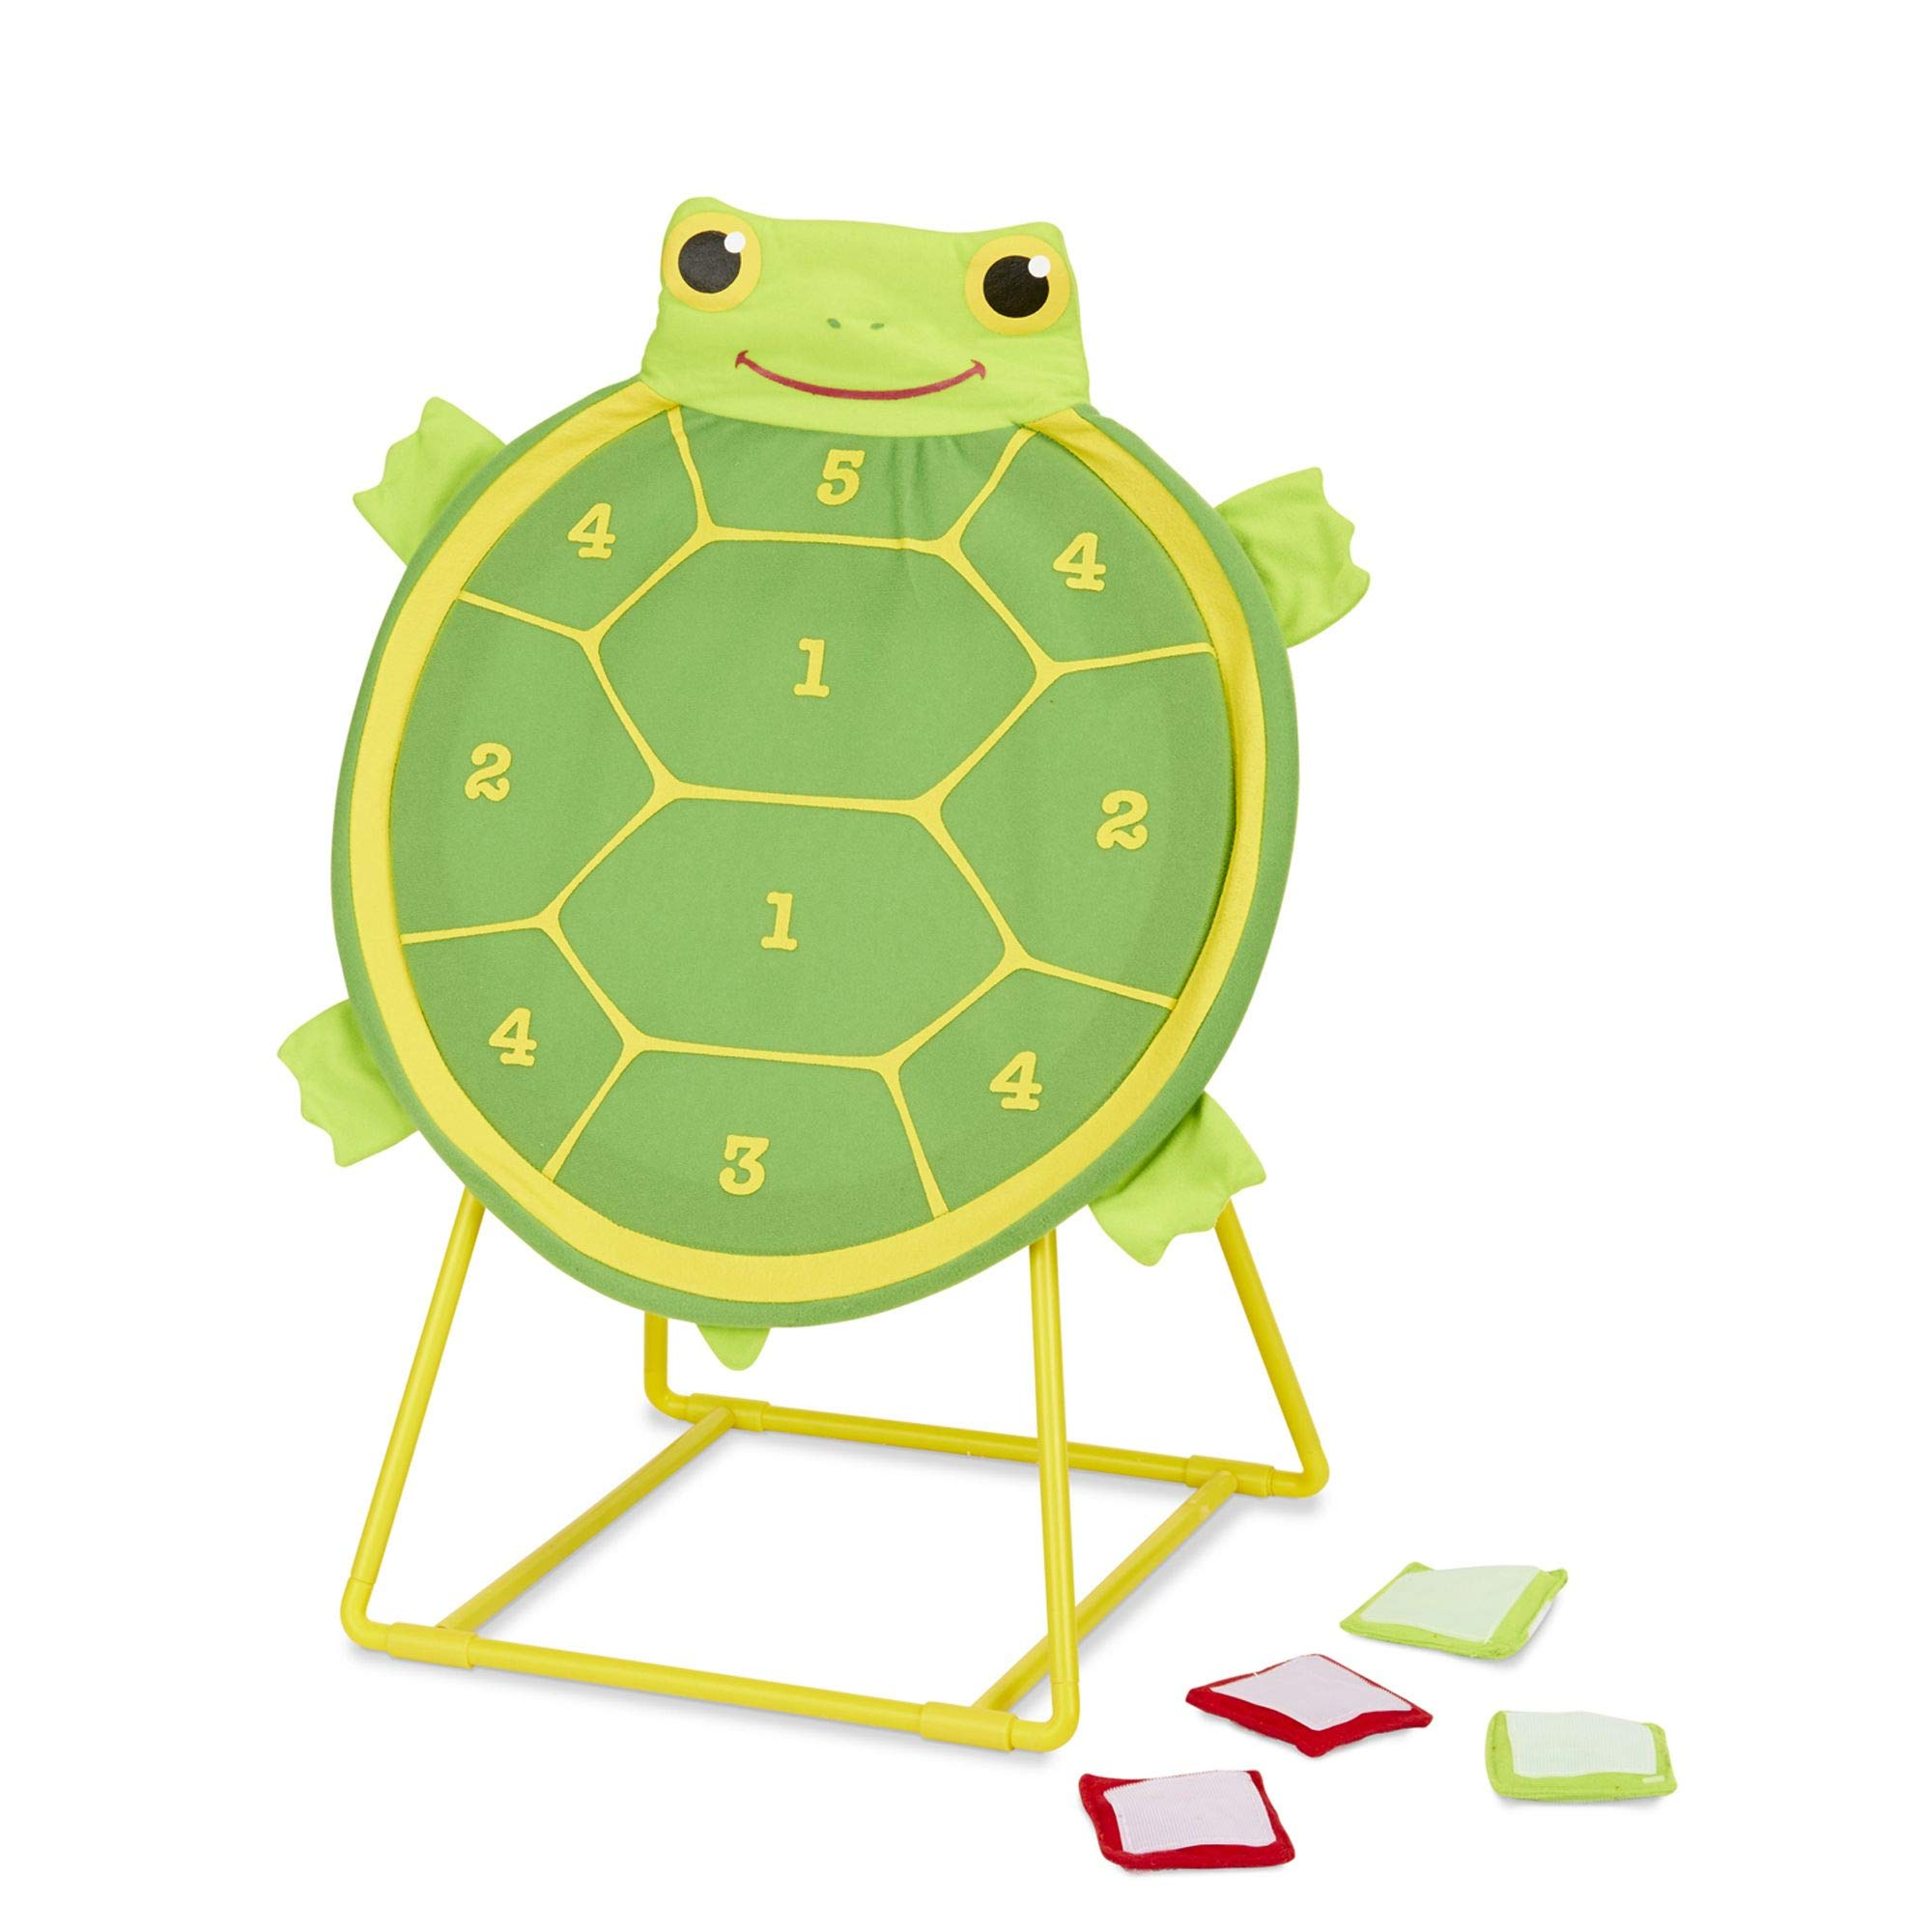 Melissa & Doug Tootle Turtle Target Game, Active Play & Outdoor, Two Color Bean Bags, Self-Sticking Bean Bags, 22'''' H x 14.7'''' W x 2'''' L by Melissa & Doug